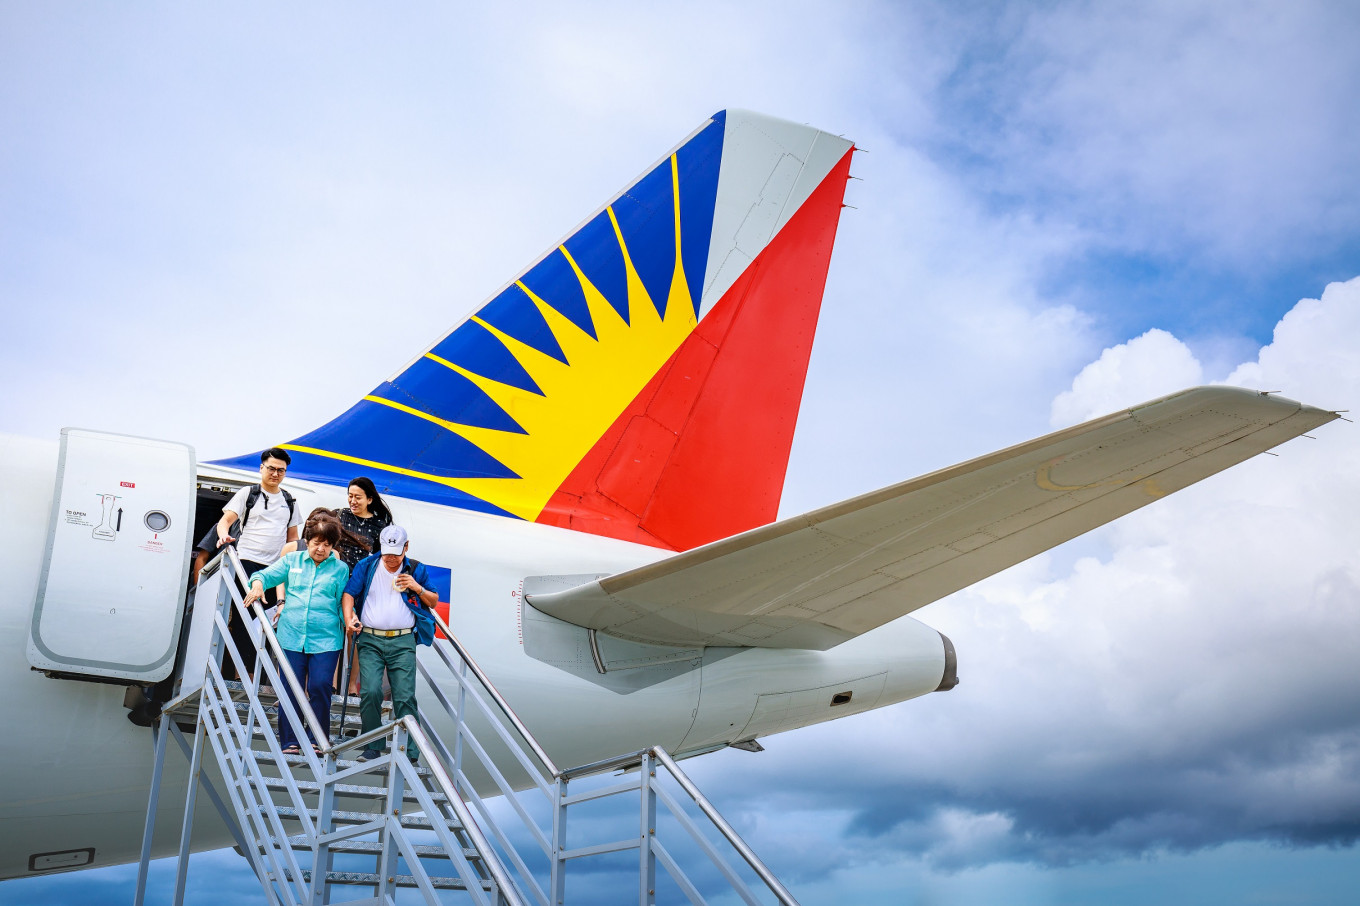 Philippine Airlines to open direct flight connecting Manado, Davao